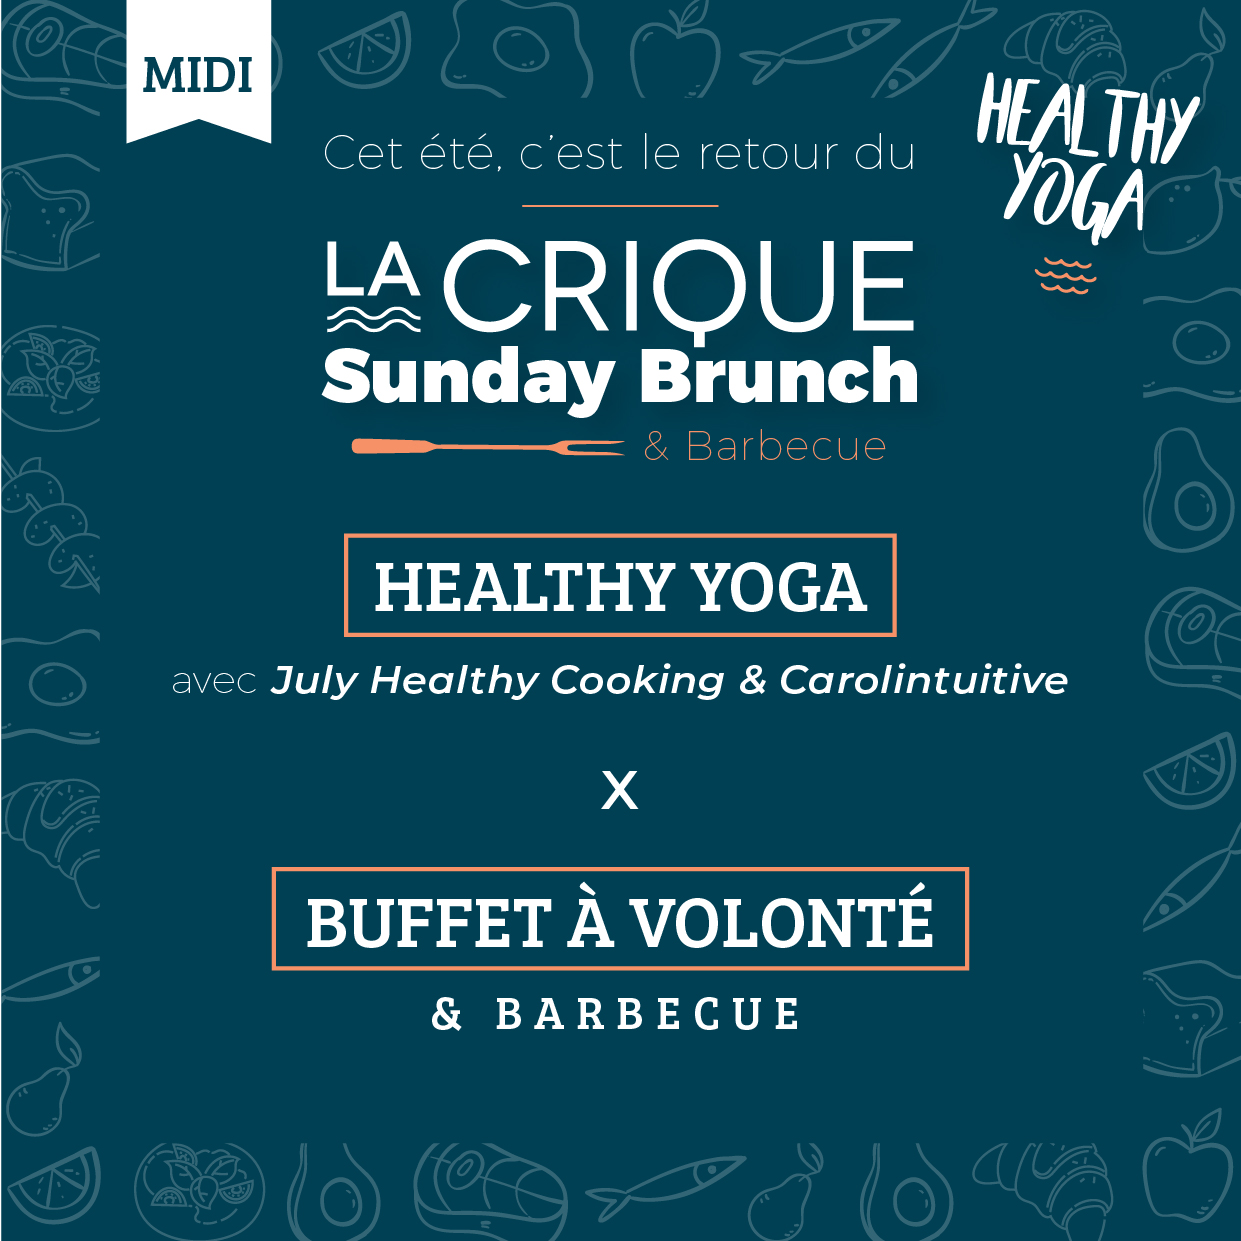 Healthy Yoga La Crique